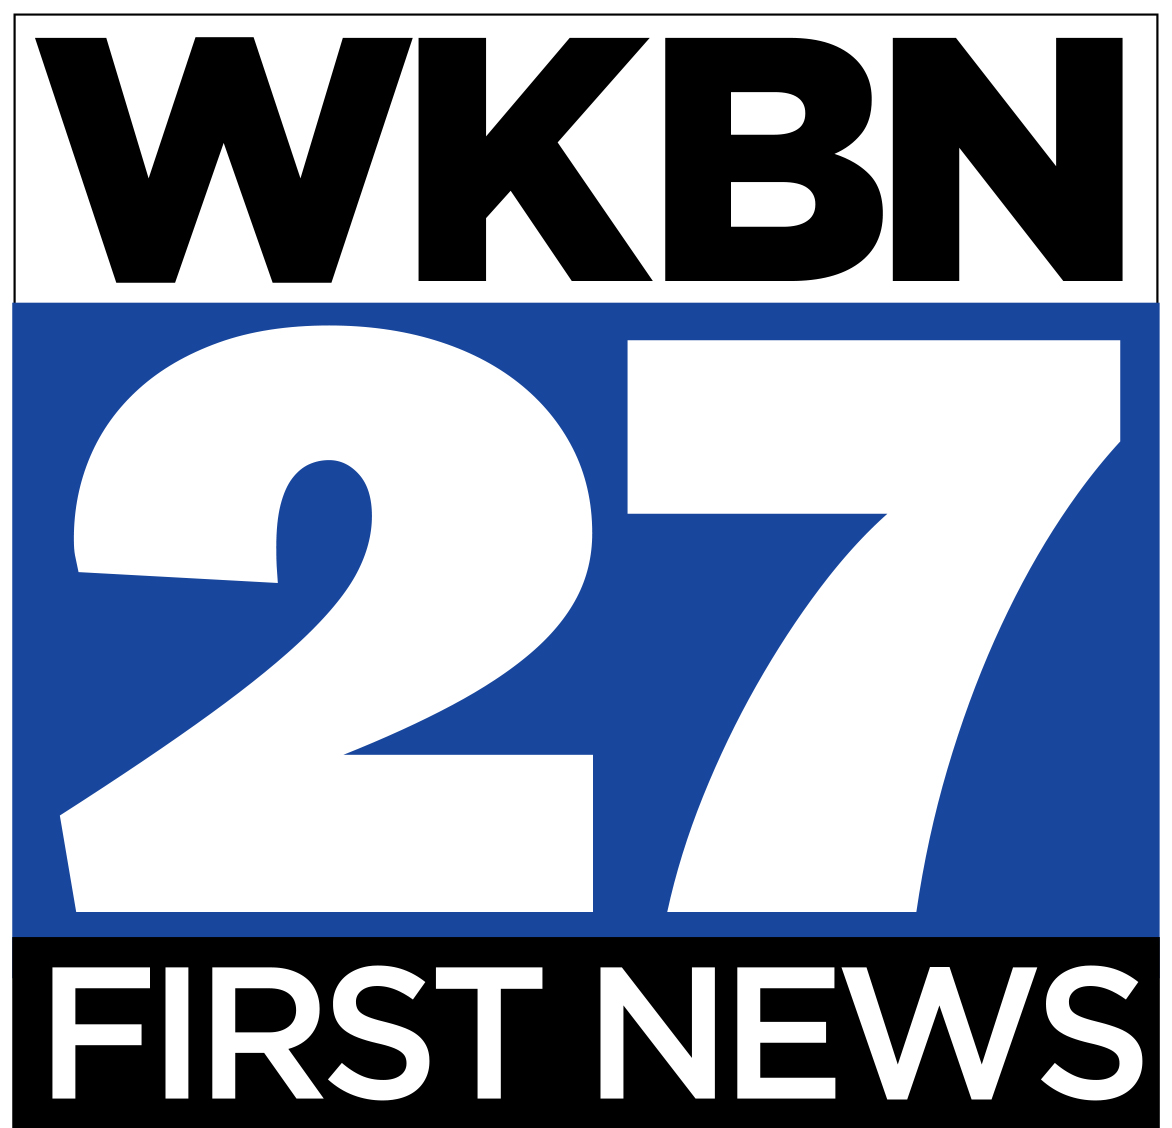 WKBN FIRST NEWS SQUARE